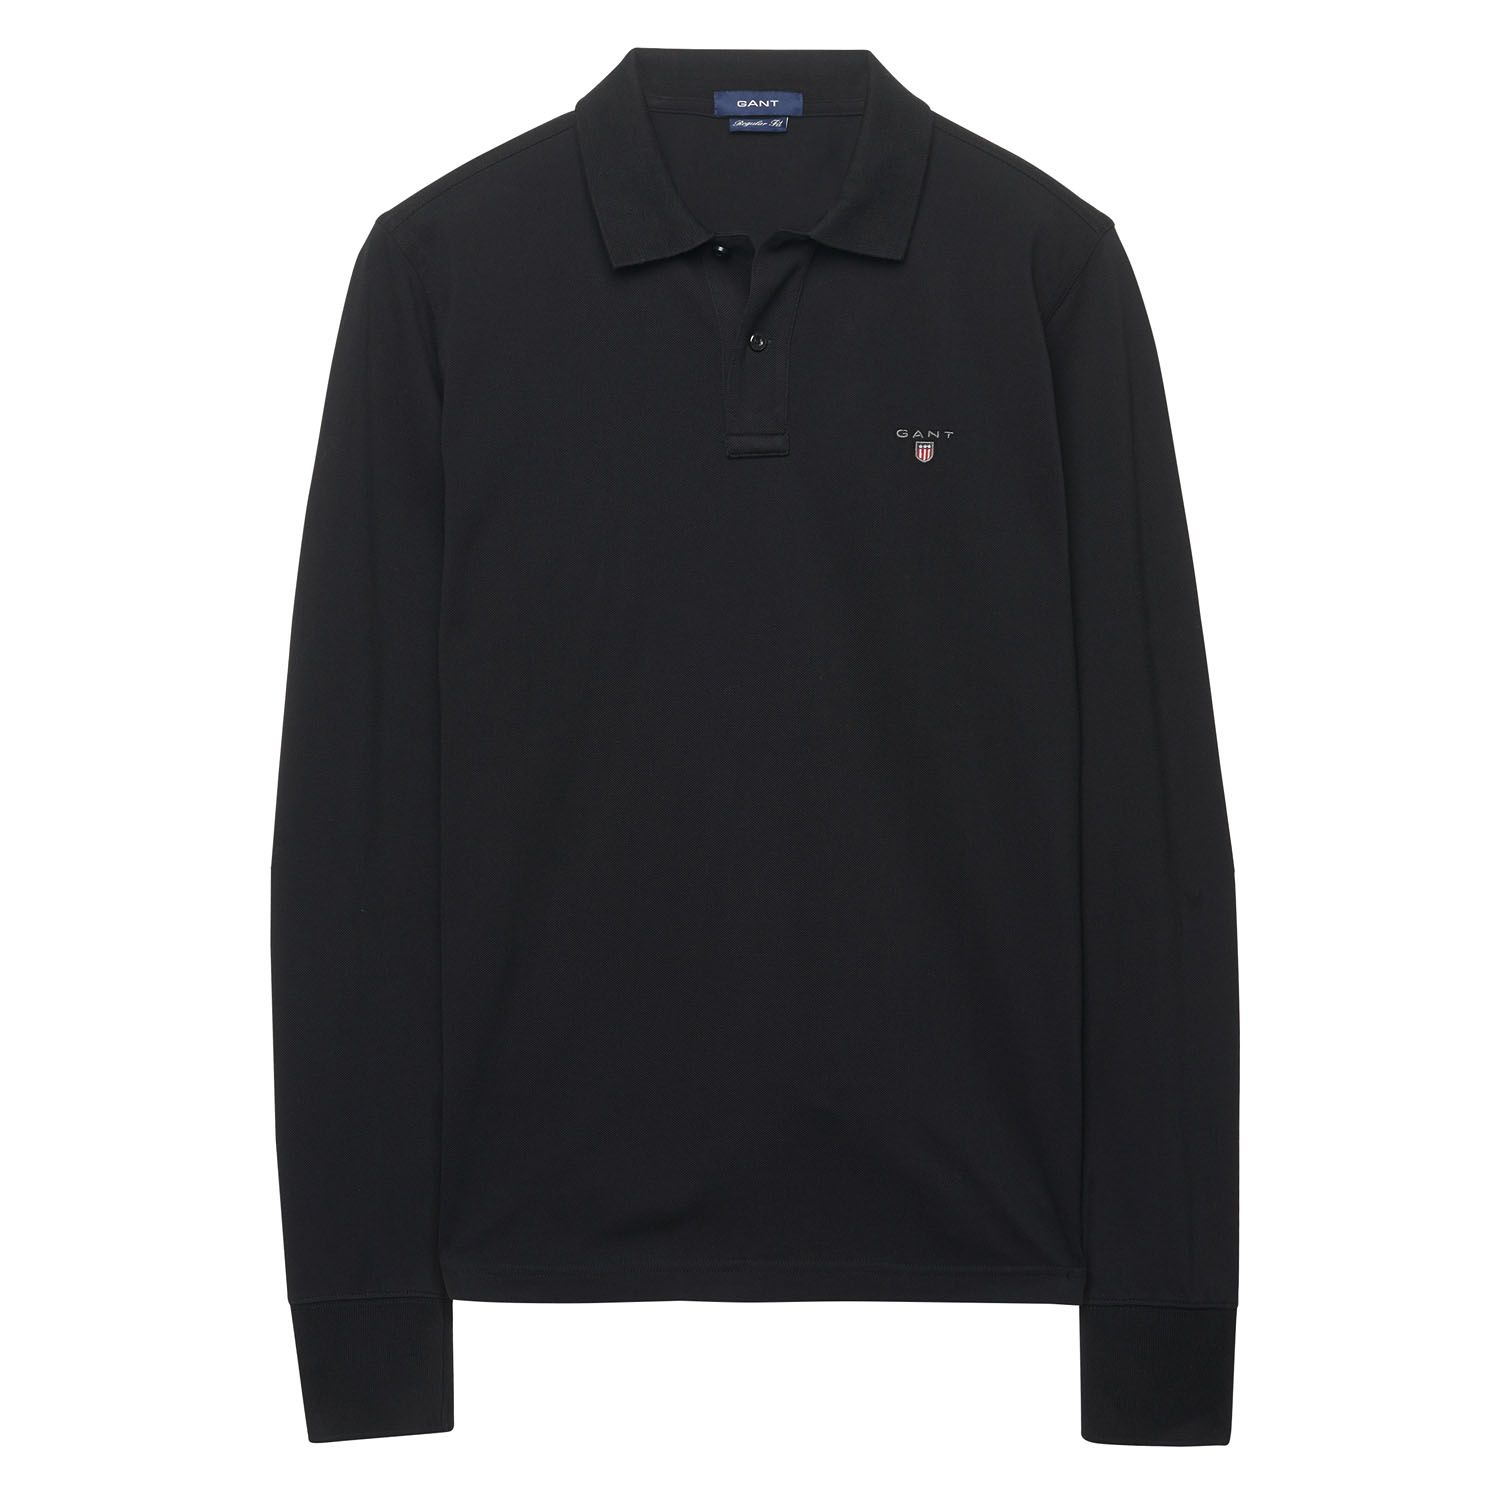 GANT Black Long Sleeved Polo Shirt